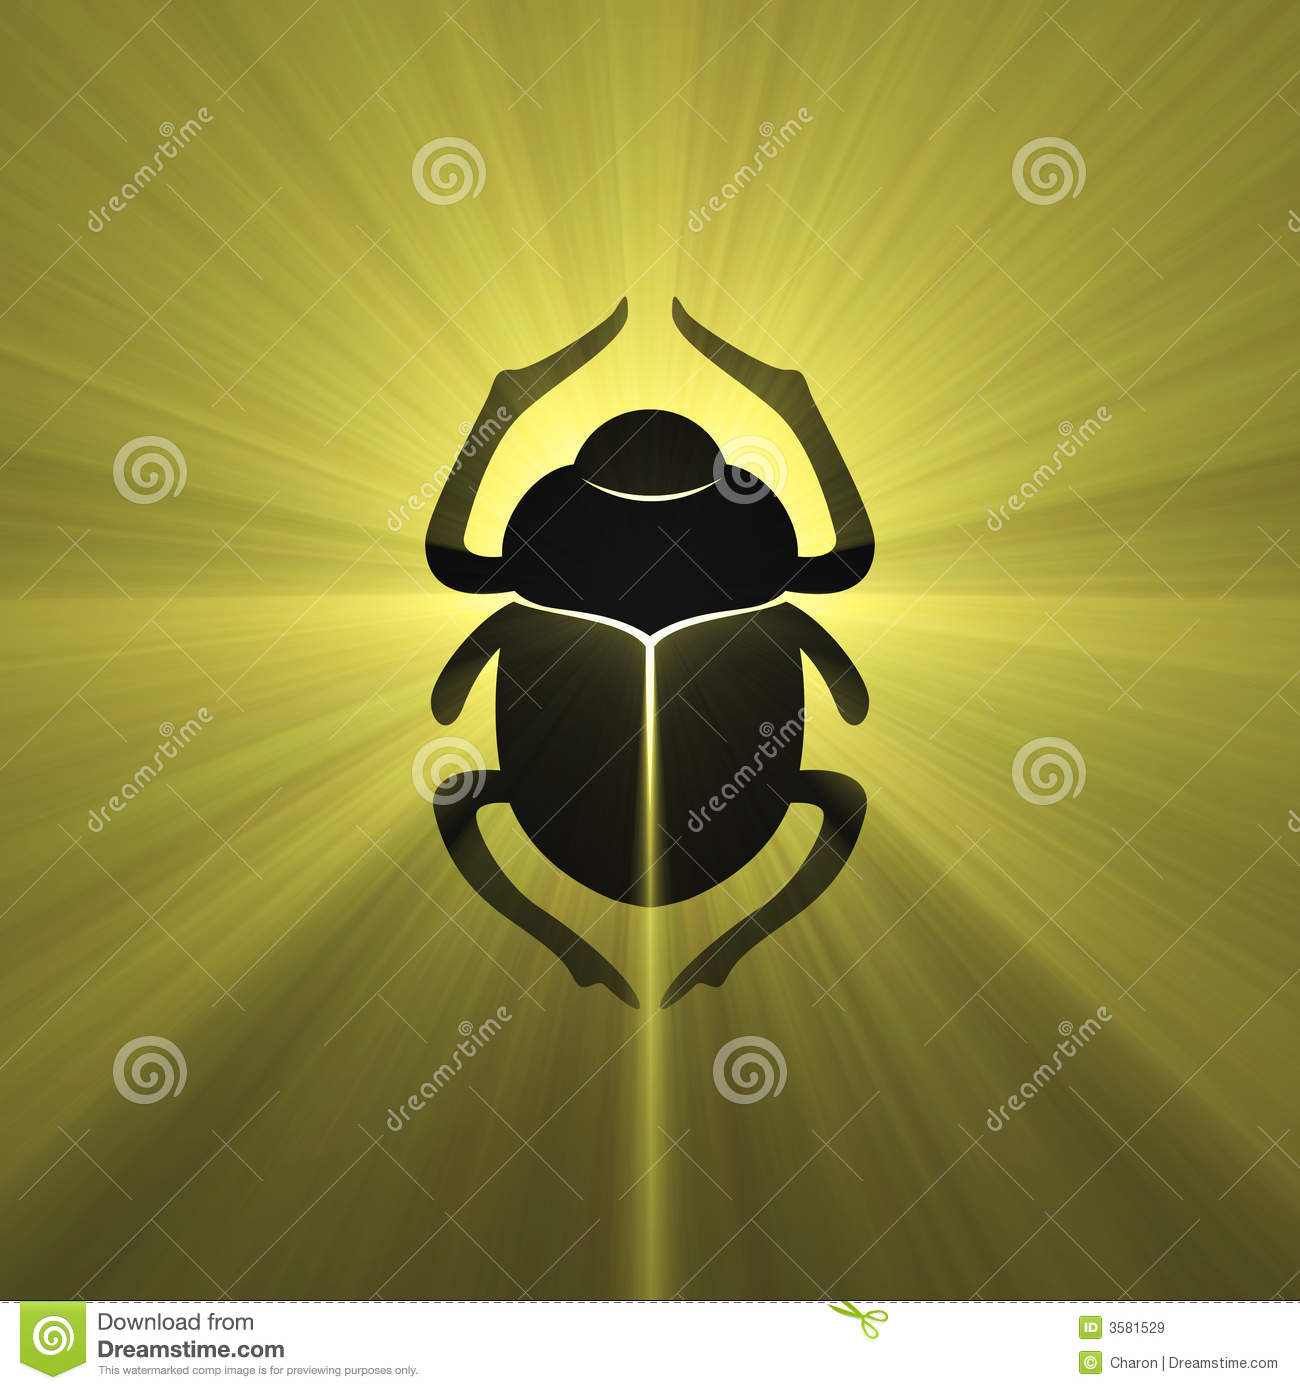 the significance of the scarab beetle in egyptian religious beliefs The significance of the egyptian scarab beetle through the ages the scarab beetle is one of the most important symbols of the ancient egypt this mythological symbol was depicted in amulets and other works of art.